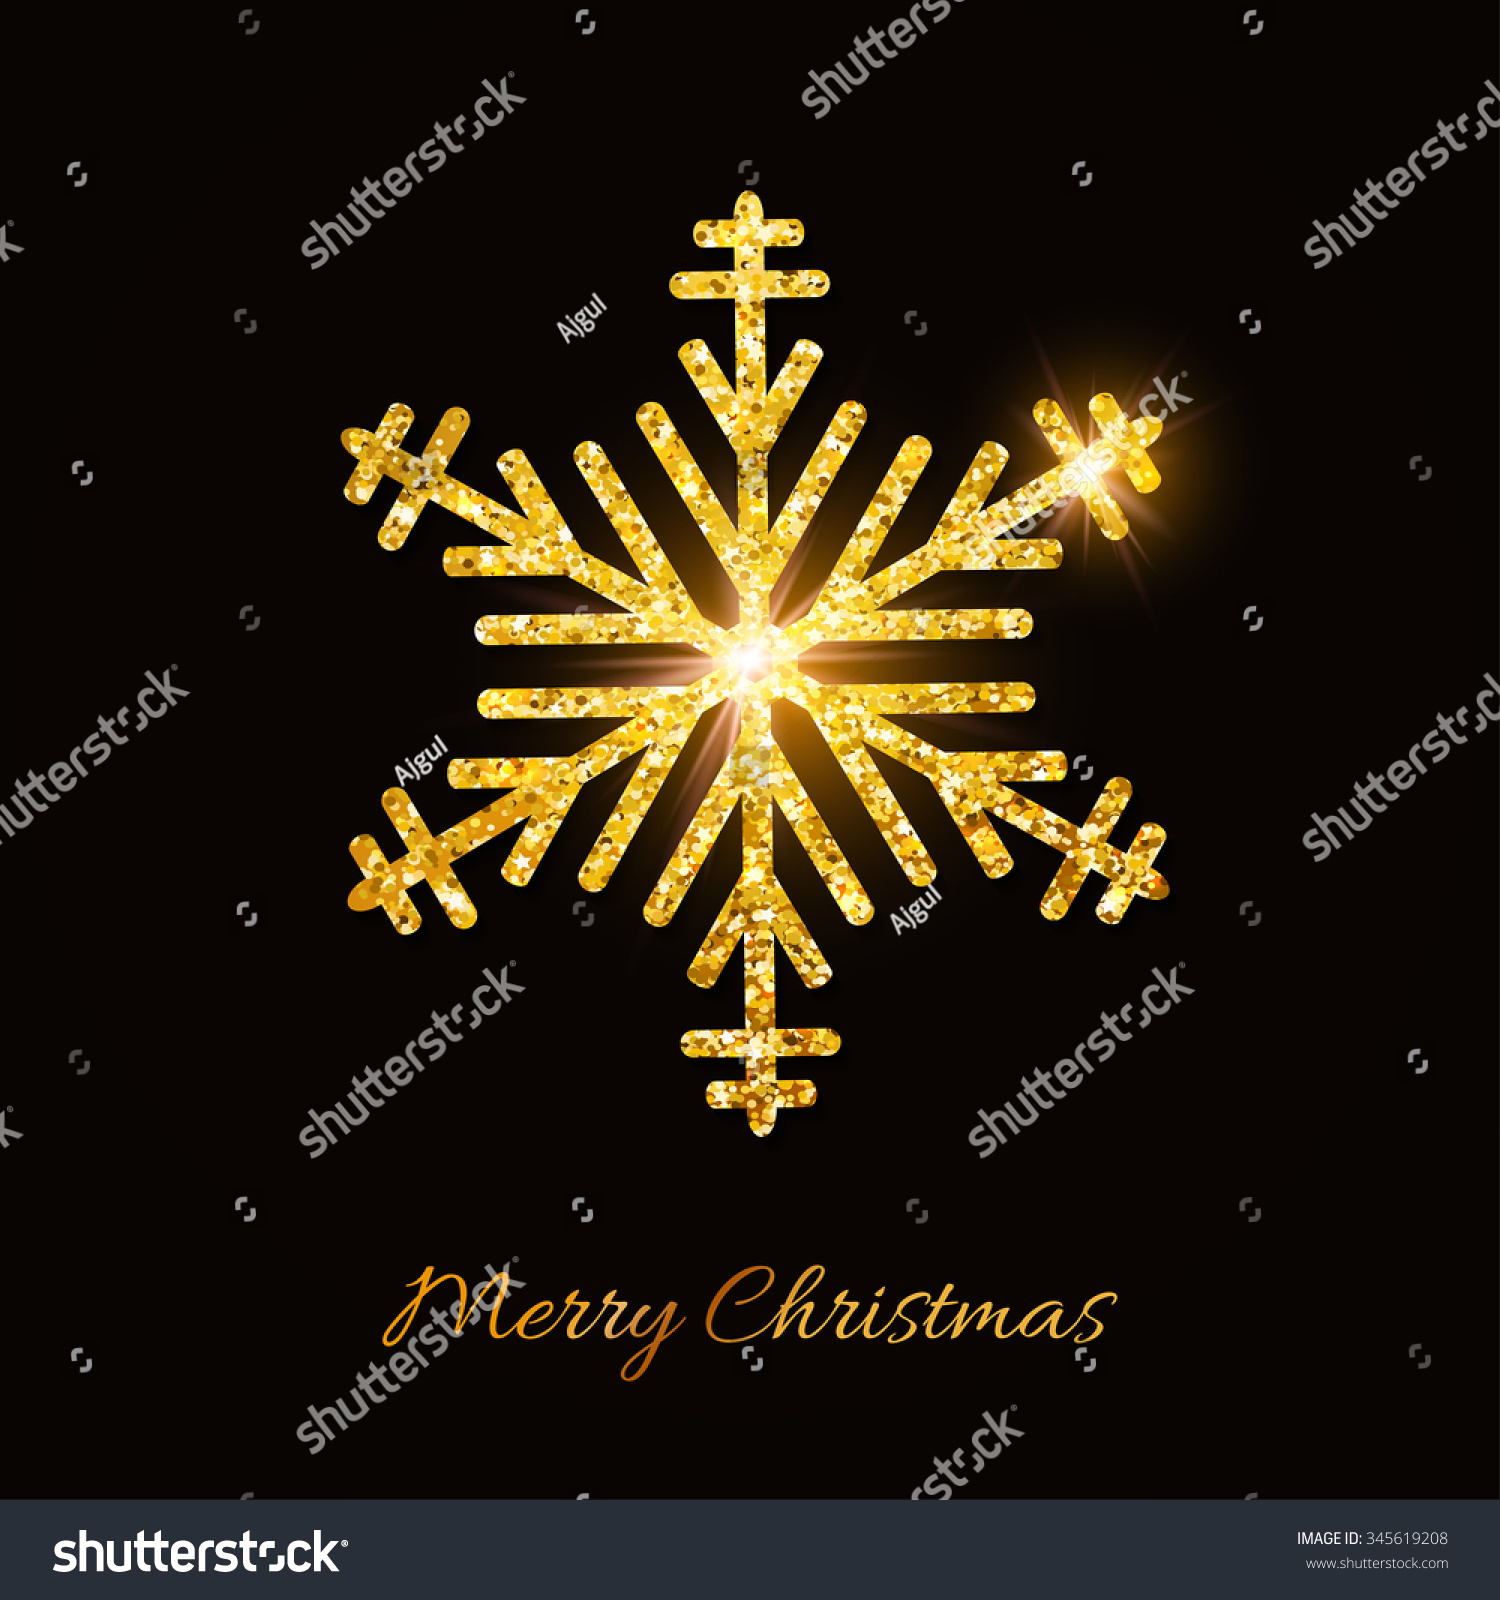 merry christmas and happy new year background golden glitter snowflake on black background festive